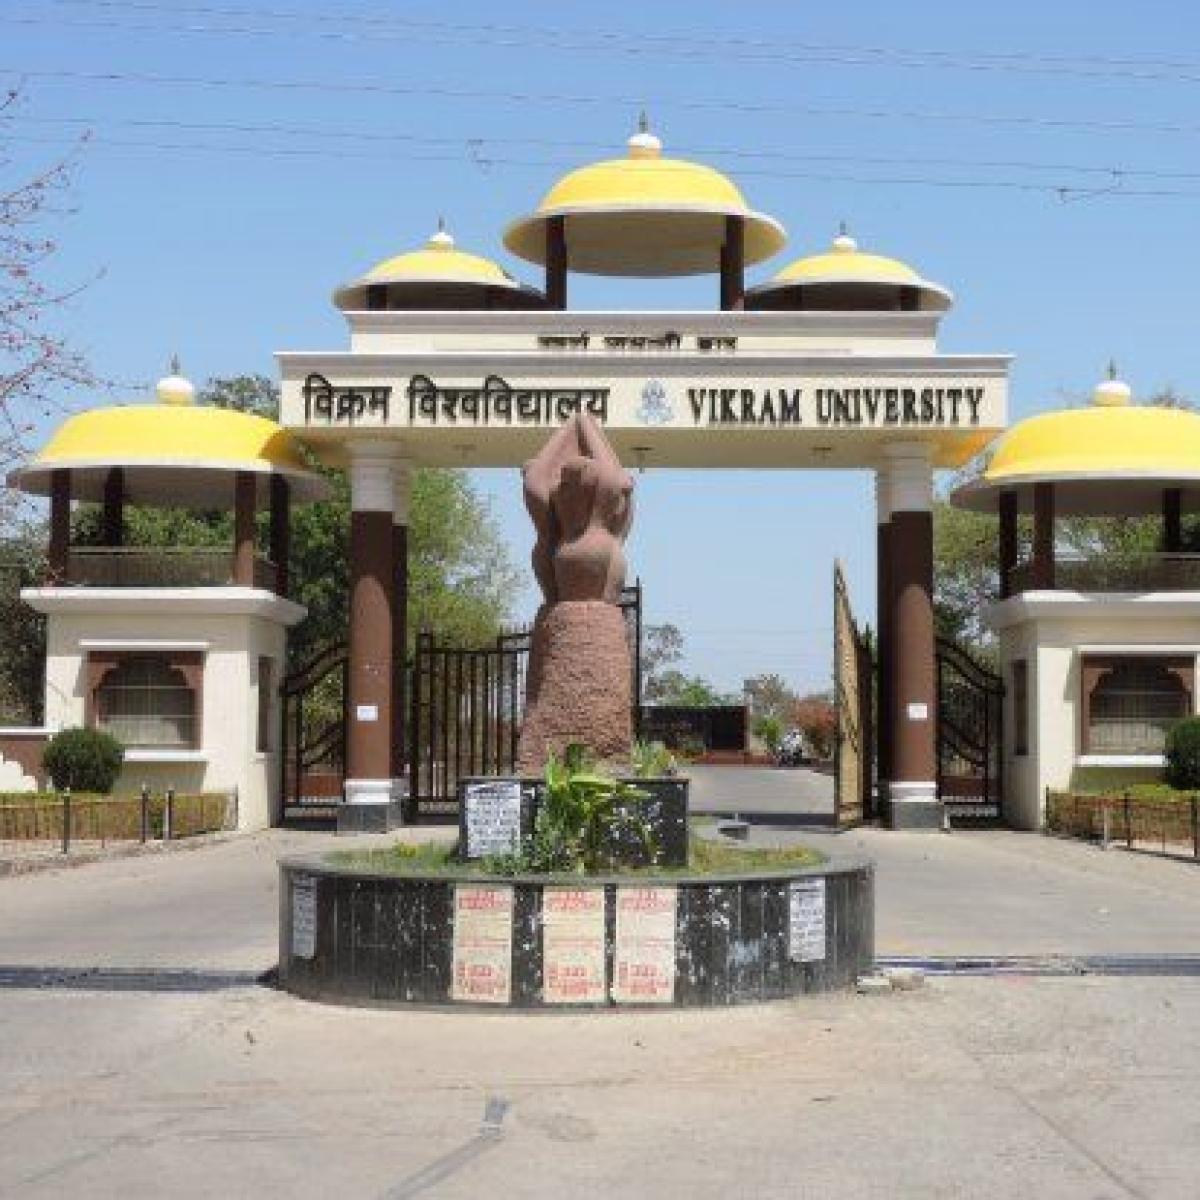 Ujjain: Irregularities alleged in payments to teams by Vikram University's sports departments